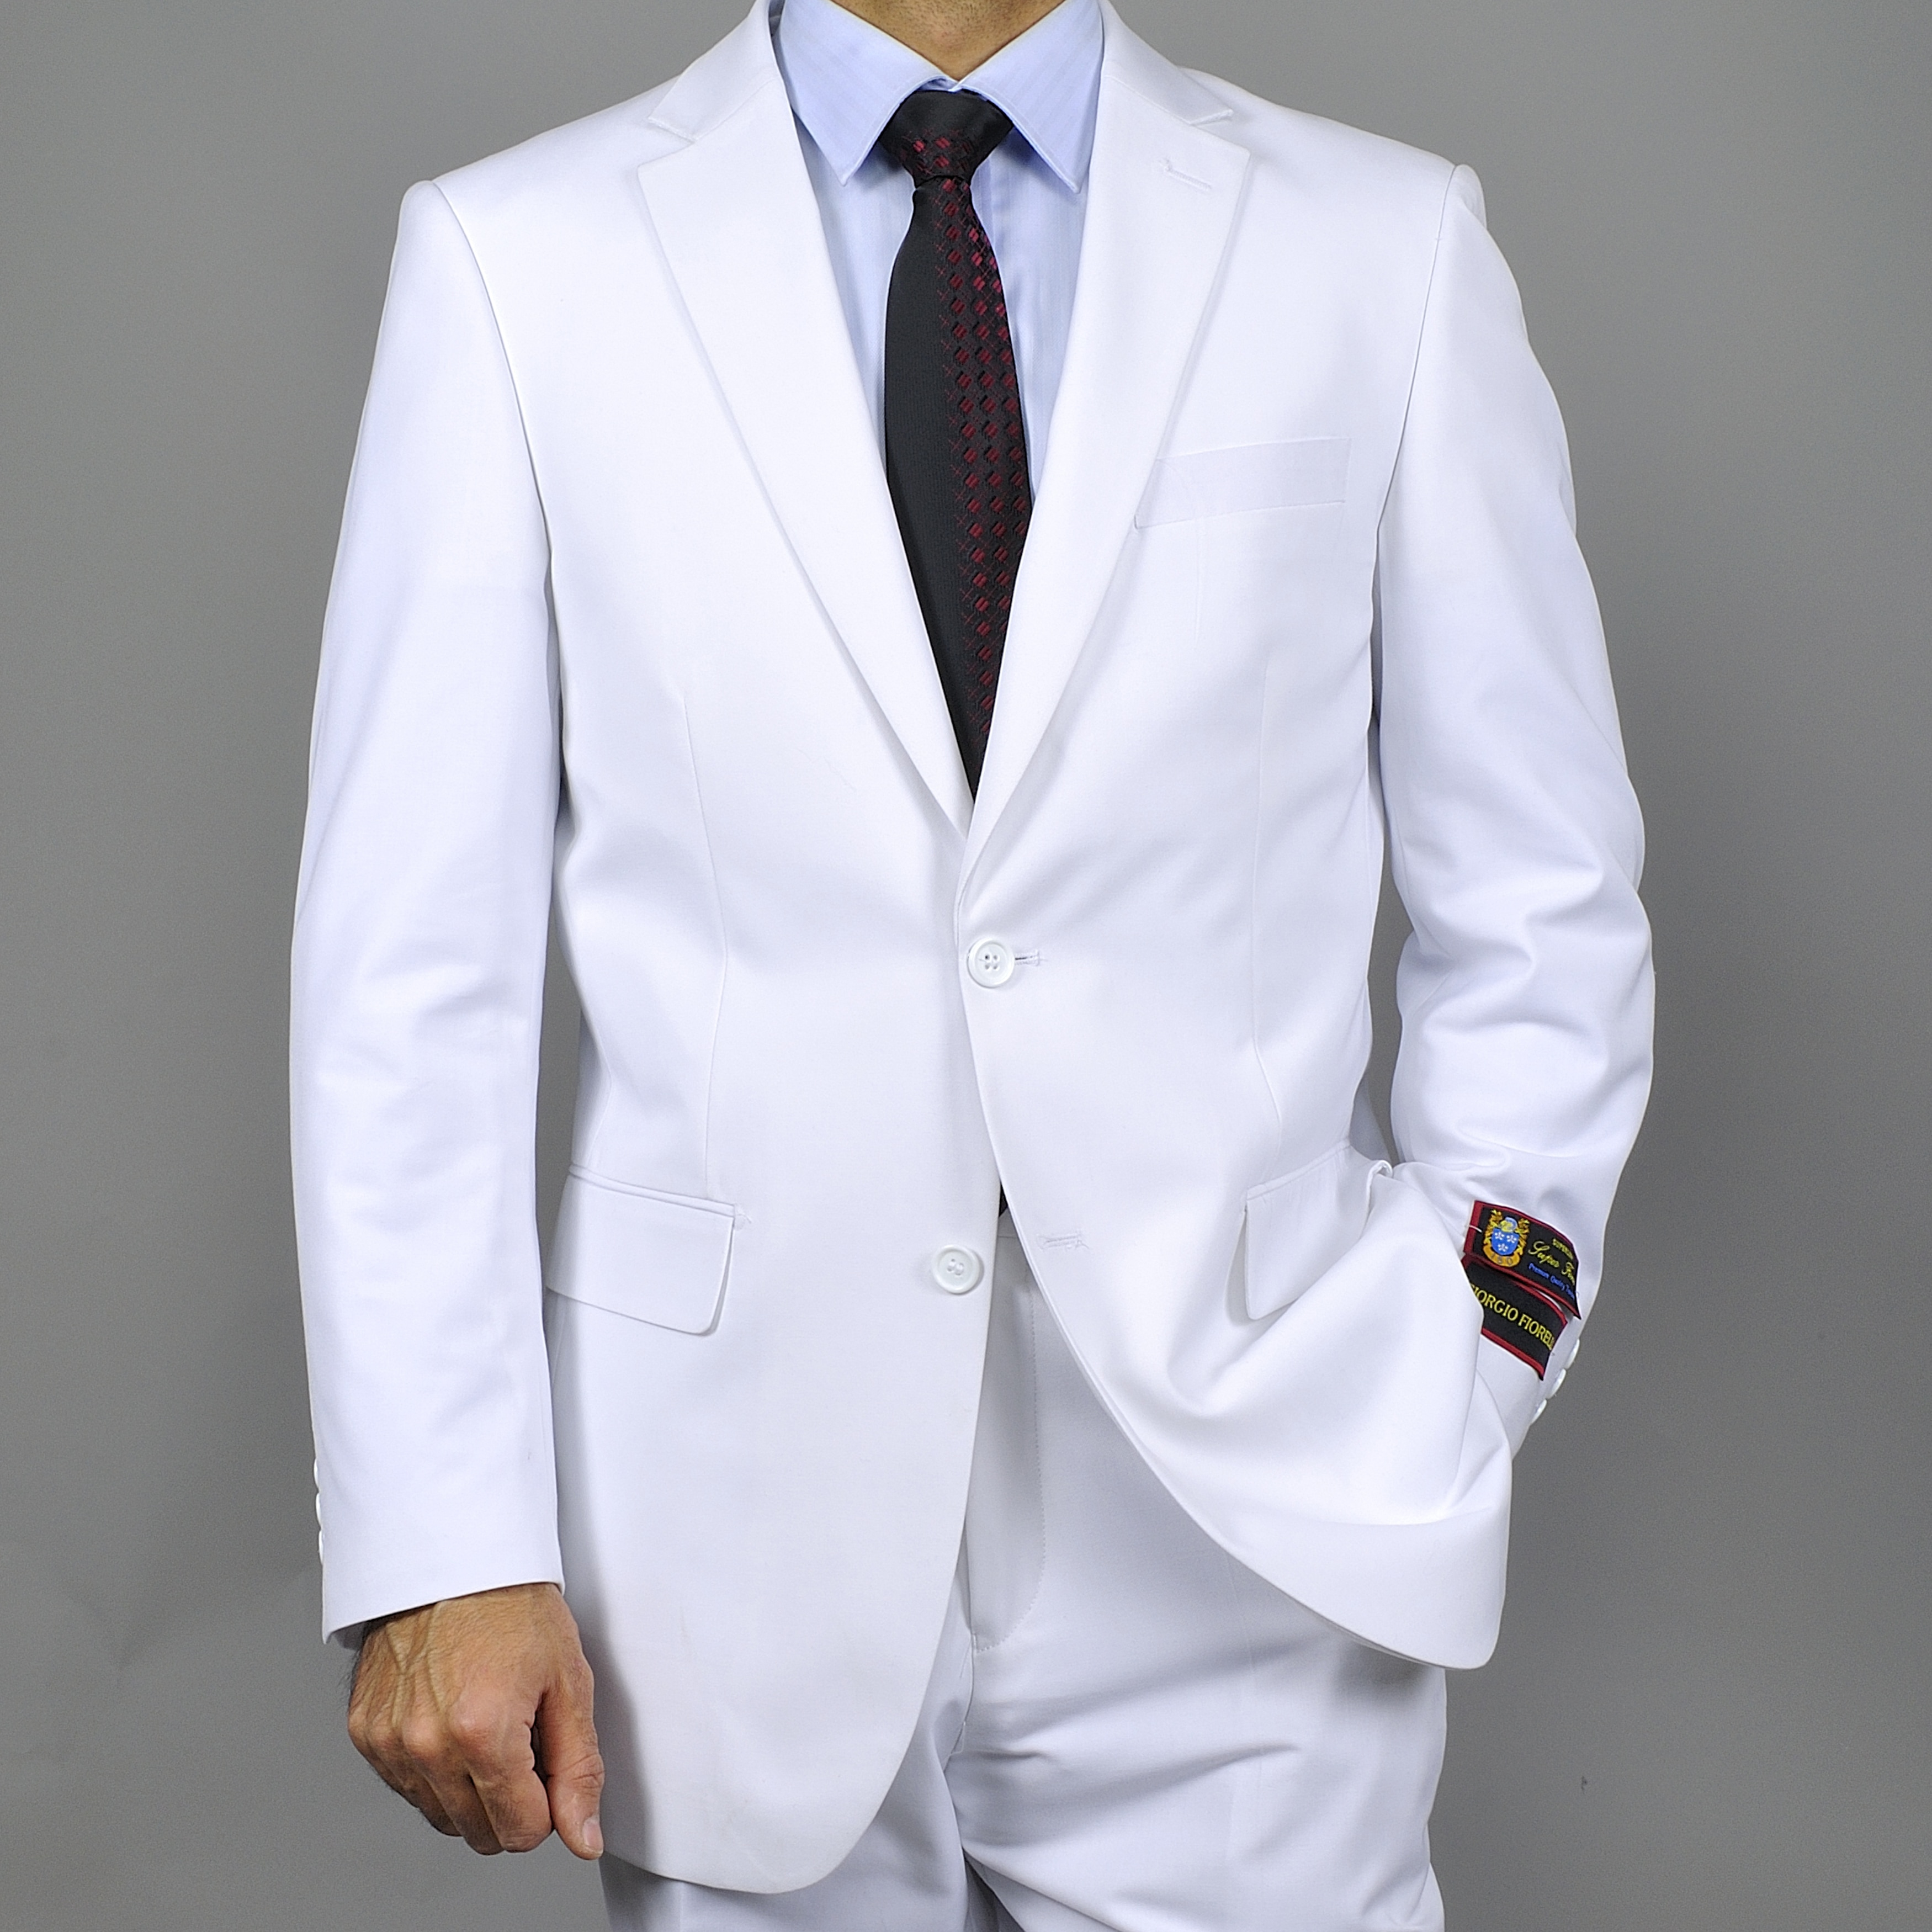 ... White Two-button Suit - Overstock™ Shopping - Big Discounts on Suits